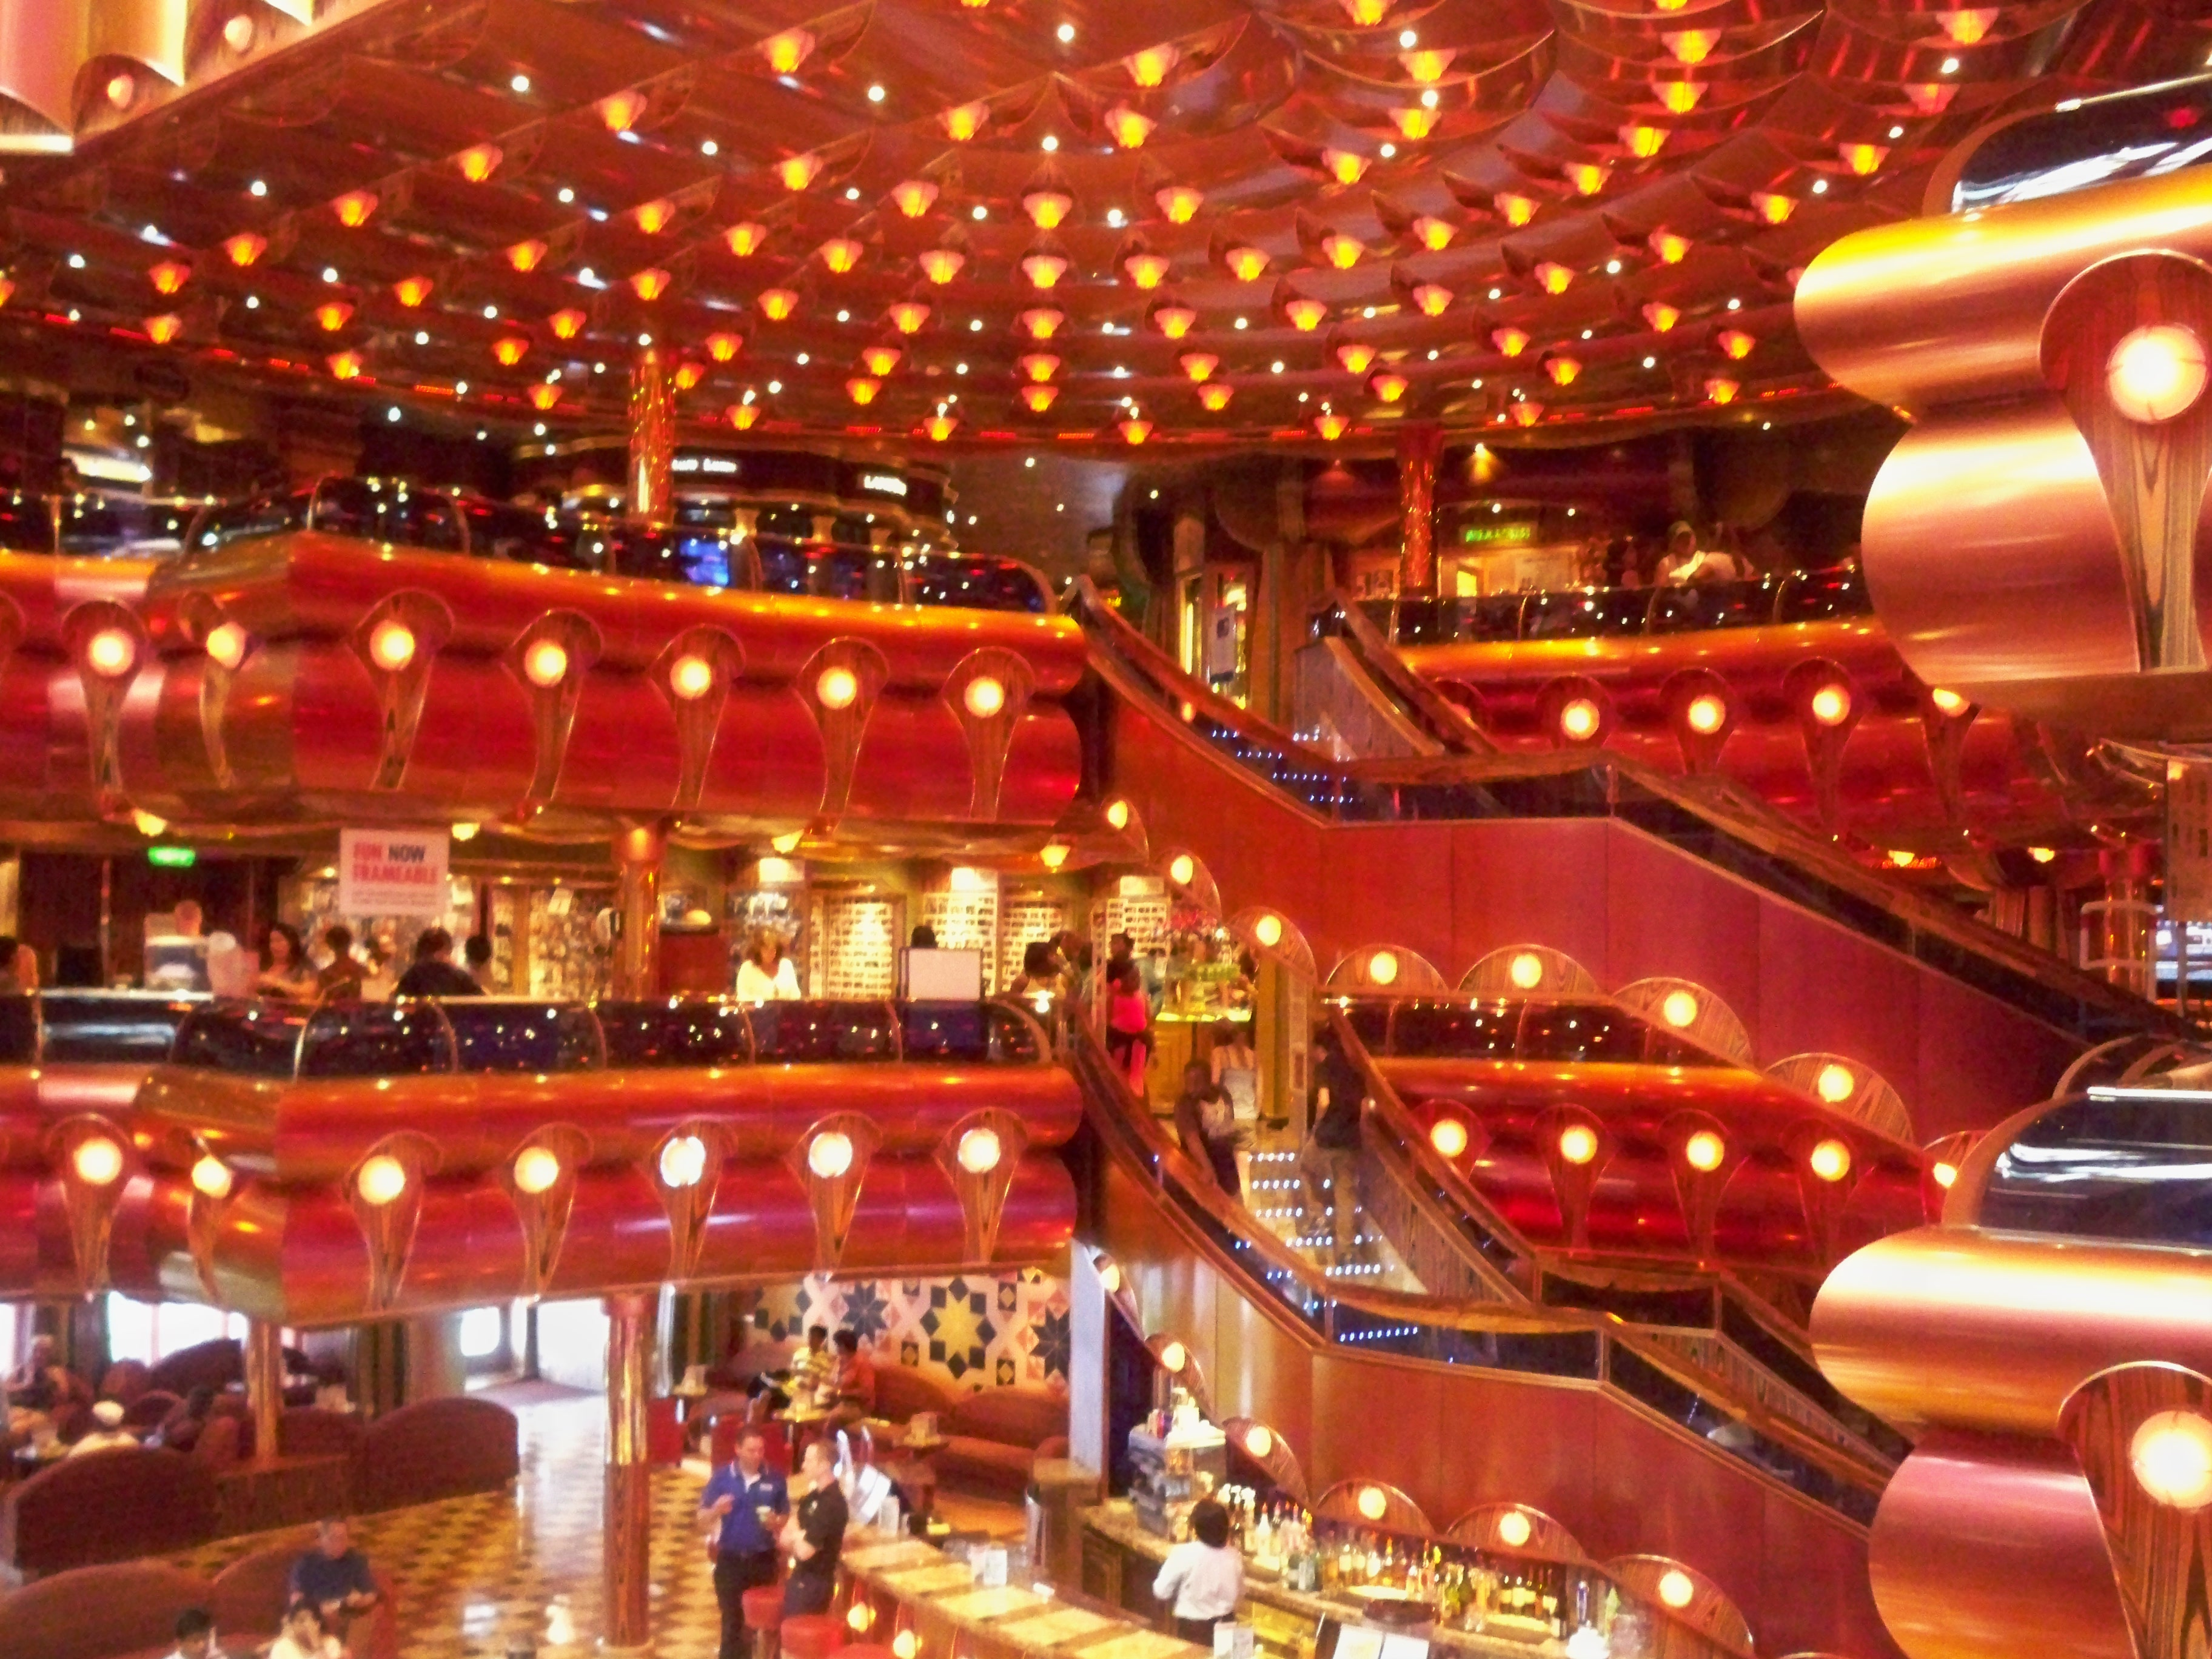 Carnival Freedom Stateroom Pictures and Descriptions on ...